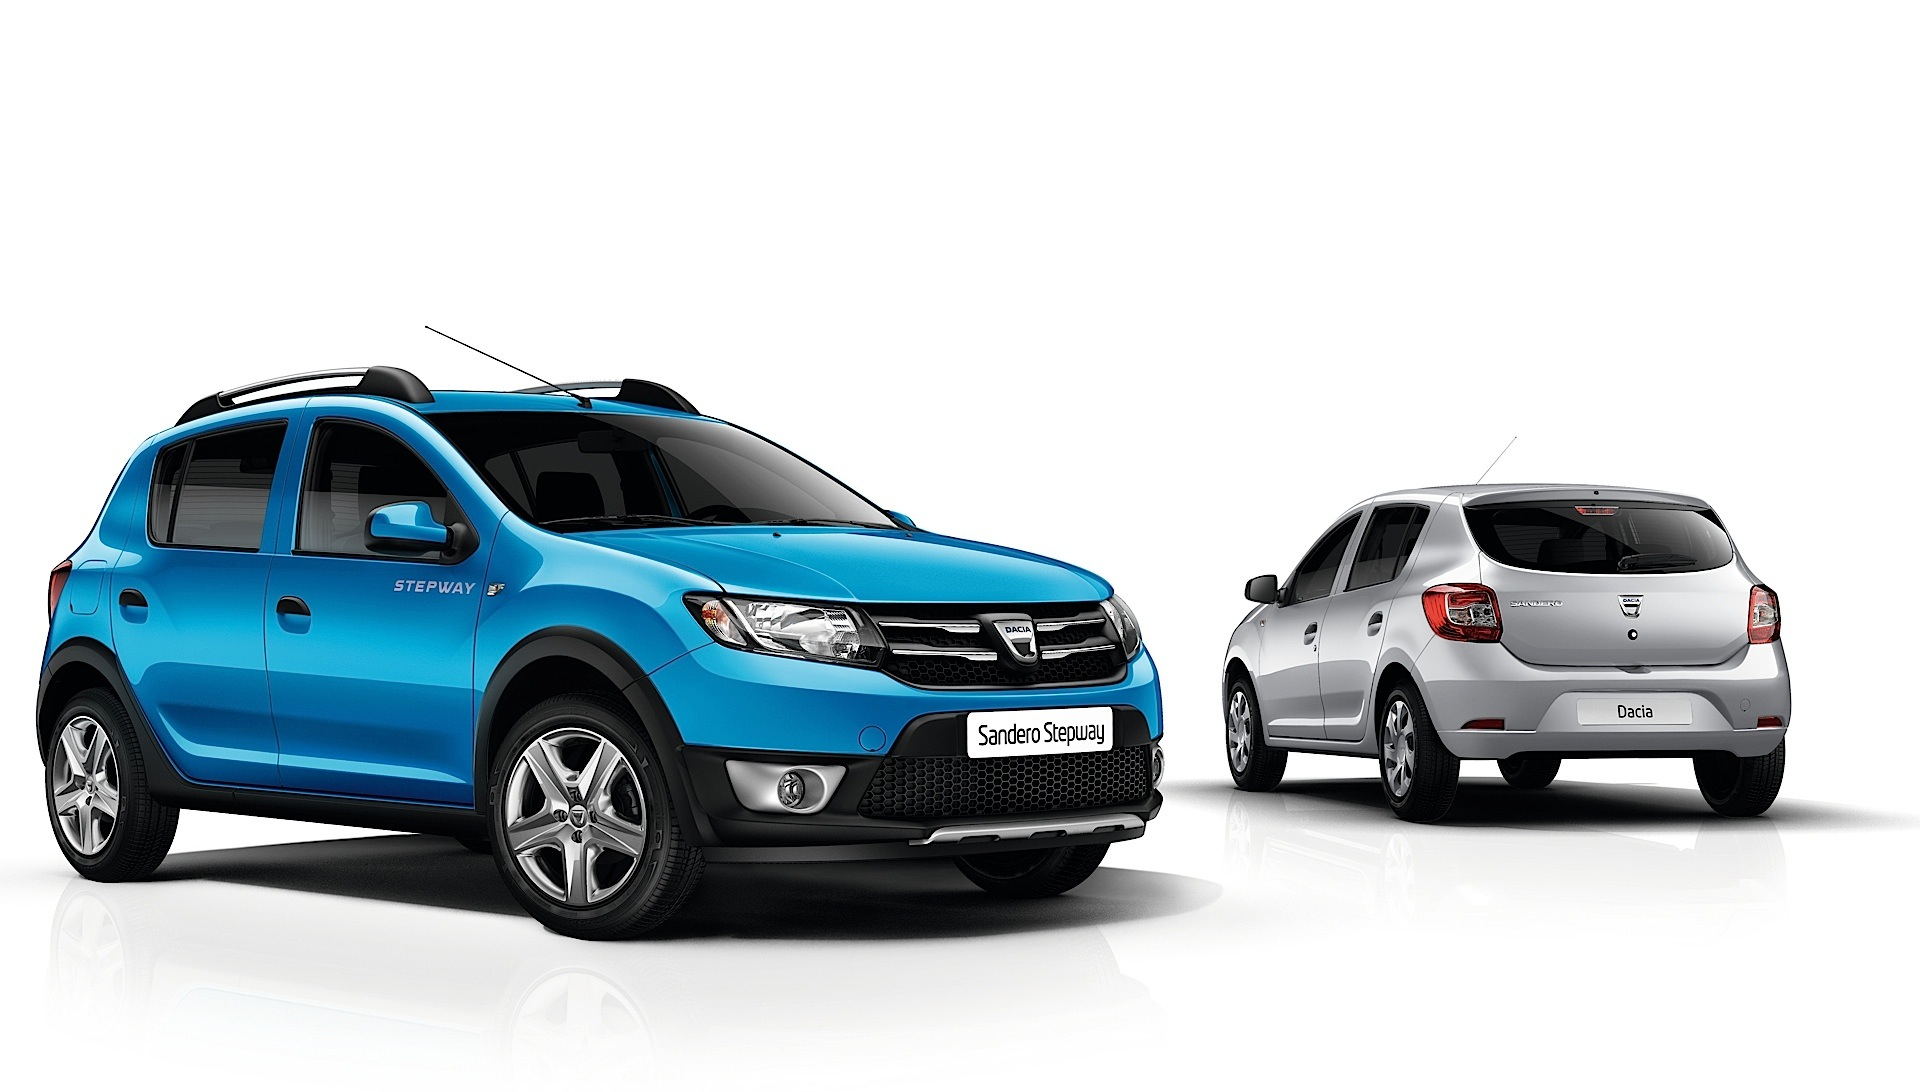 dacia sandero 2 specs photos 2012 2013 2014 2015 2016 autoevolution. Black Bedroom Furniture Sets. Home Design Ideas